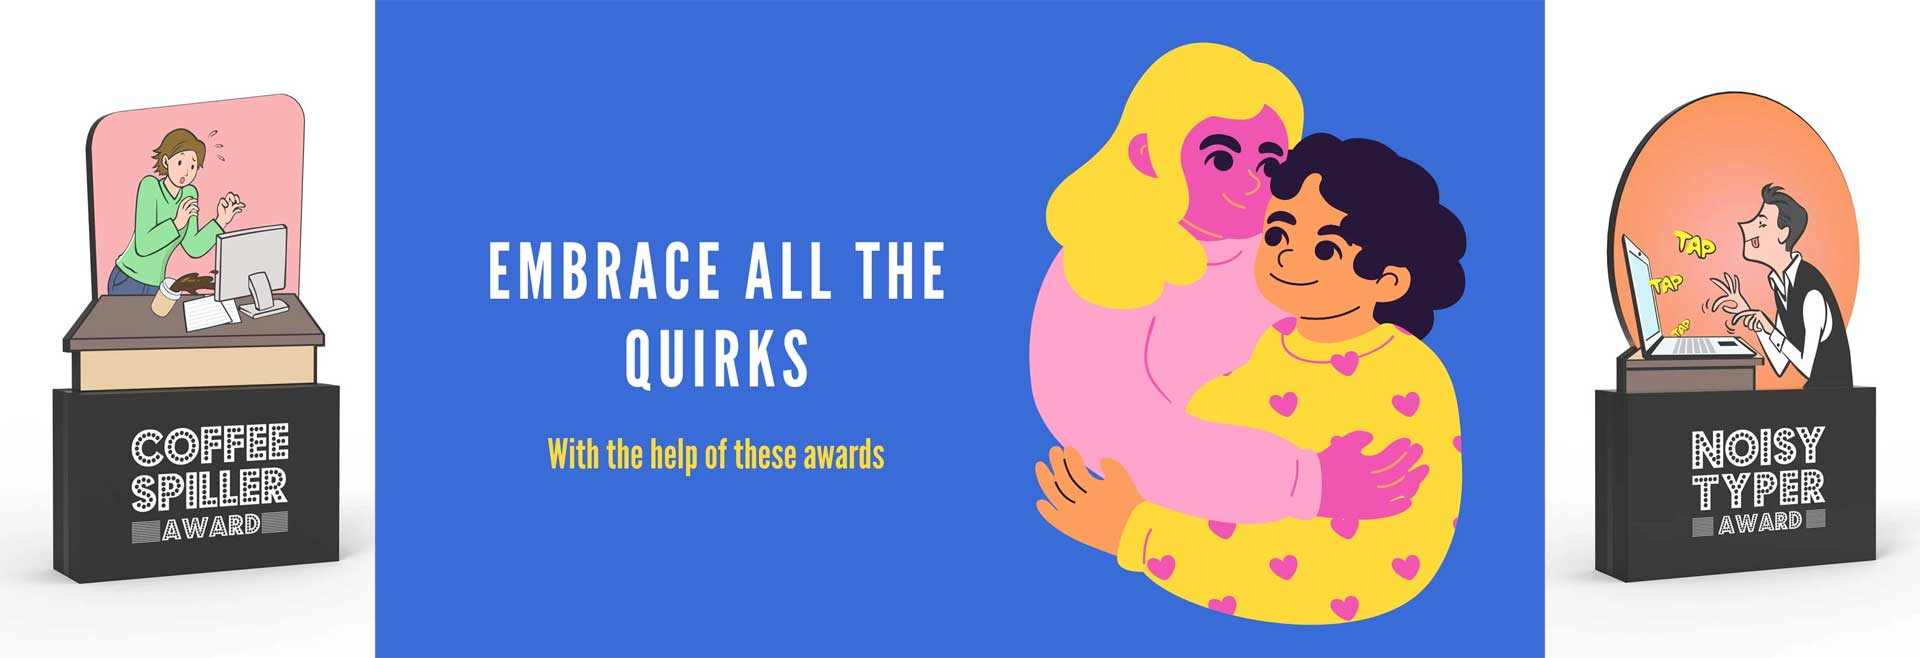 Awards that Celebrate Quirks